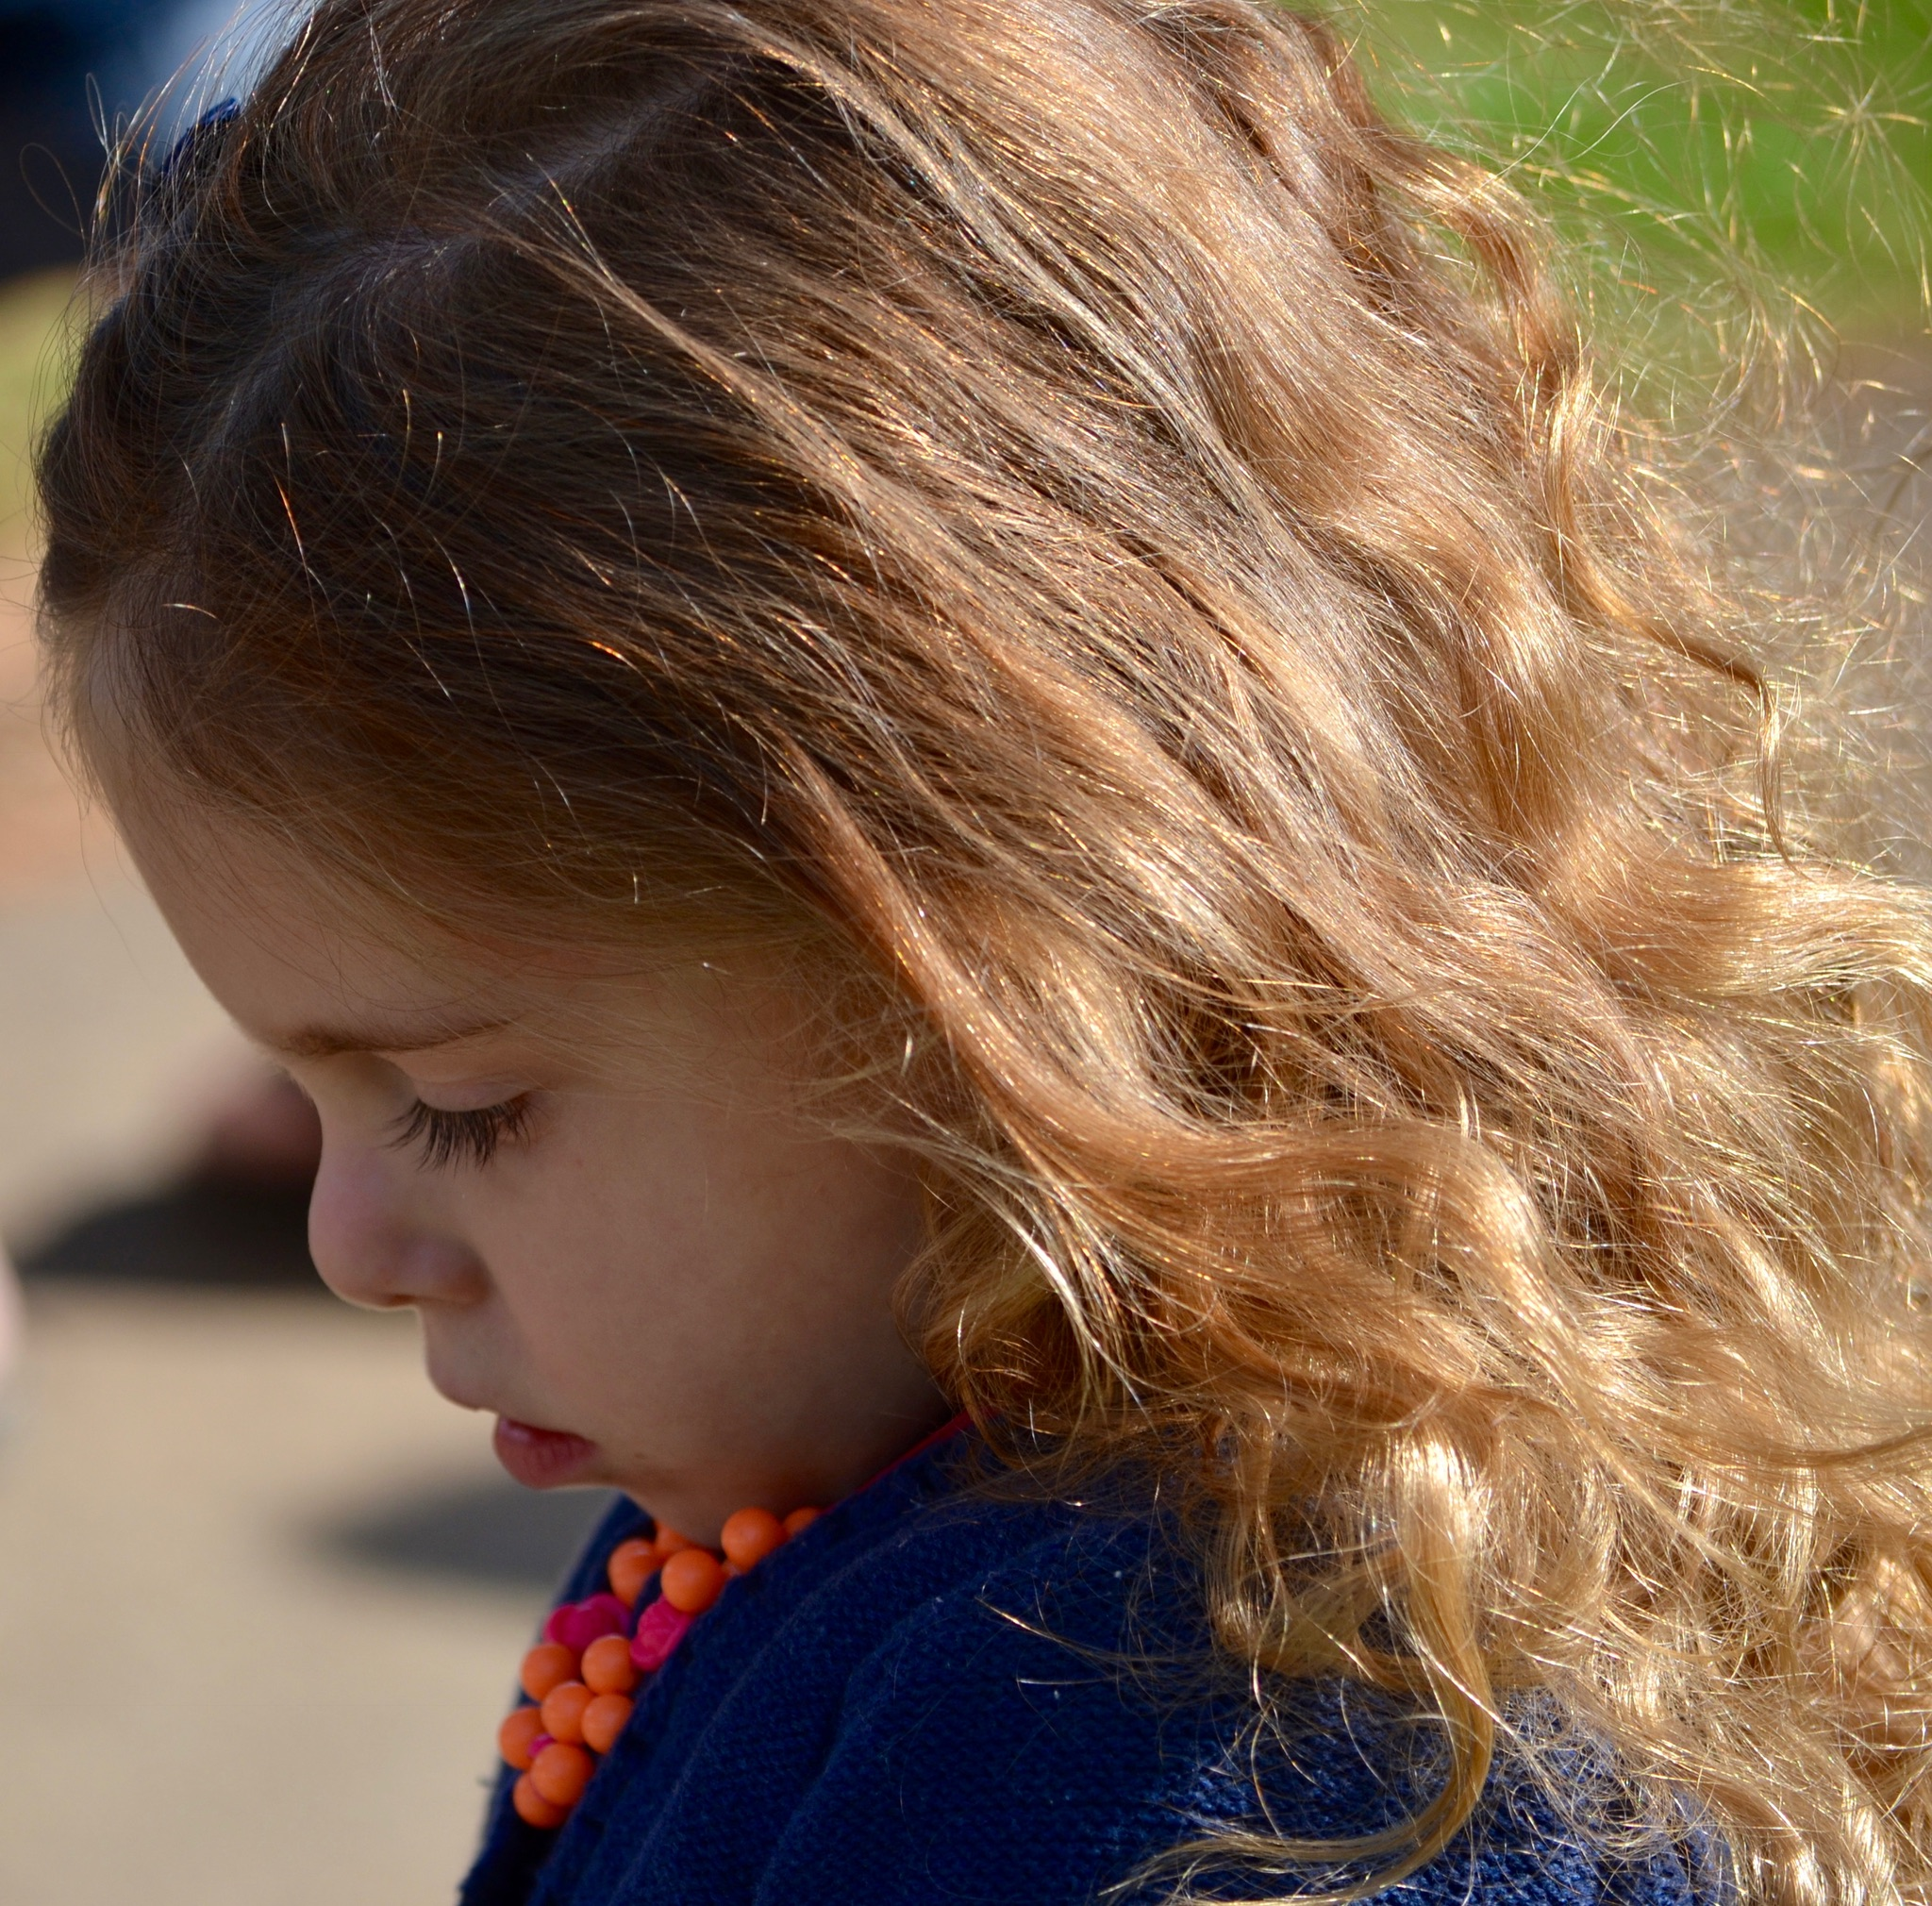 I always LOVED her eyelashes, they're so gorgeous! and her hair! that child had magnificent hair!